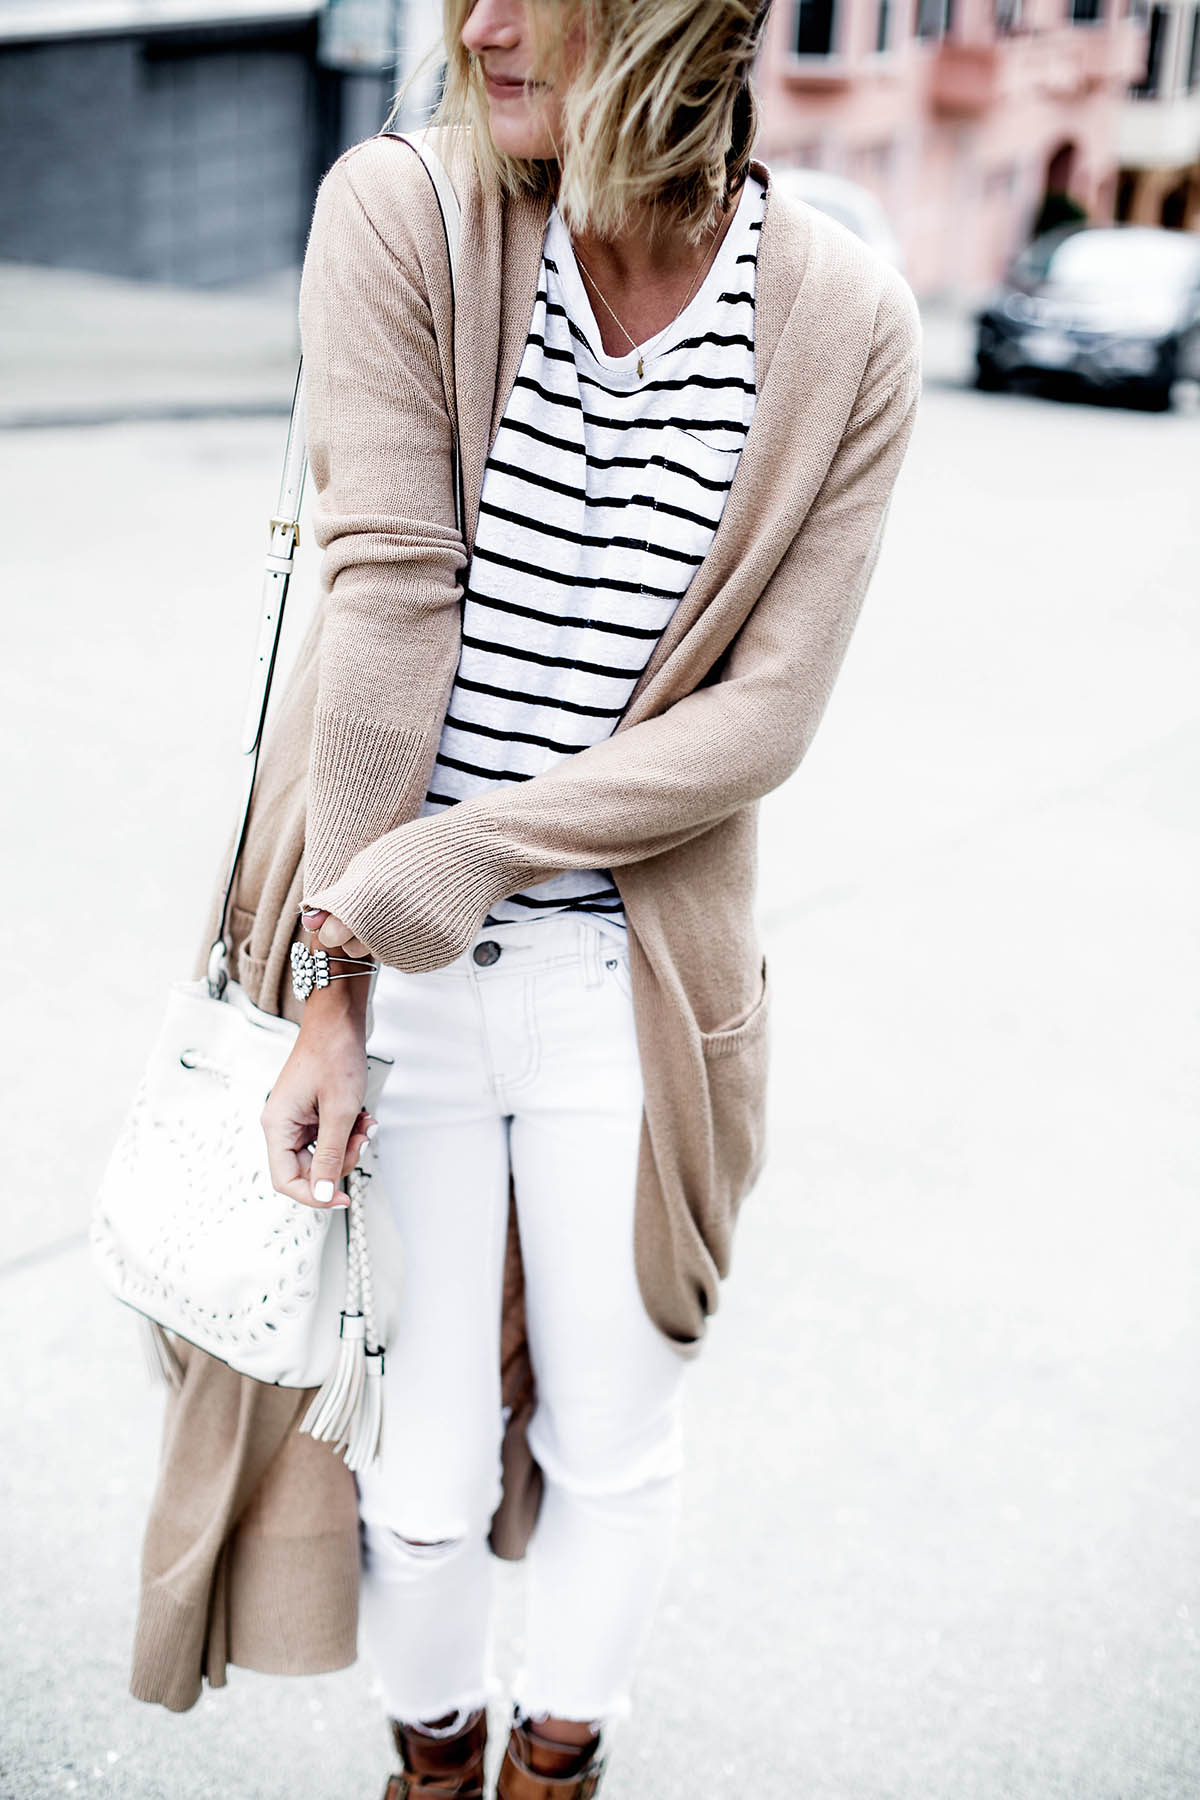 visiting San Francisco outfit in Old Navy extra long cardigan and striped tee shirt